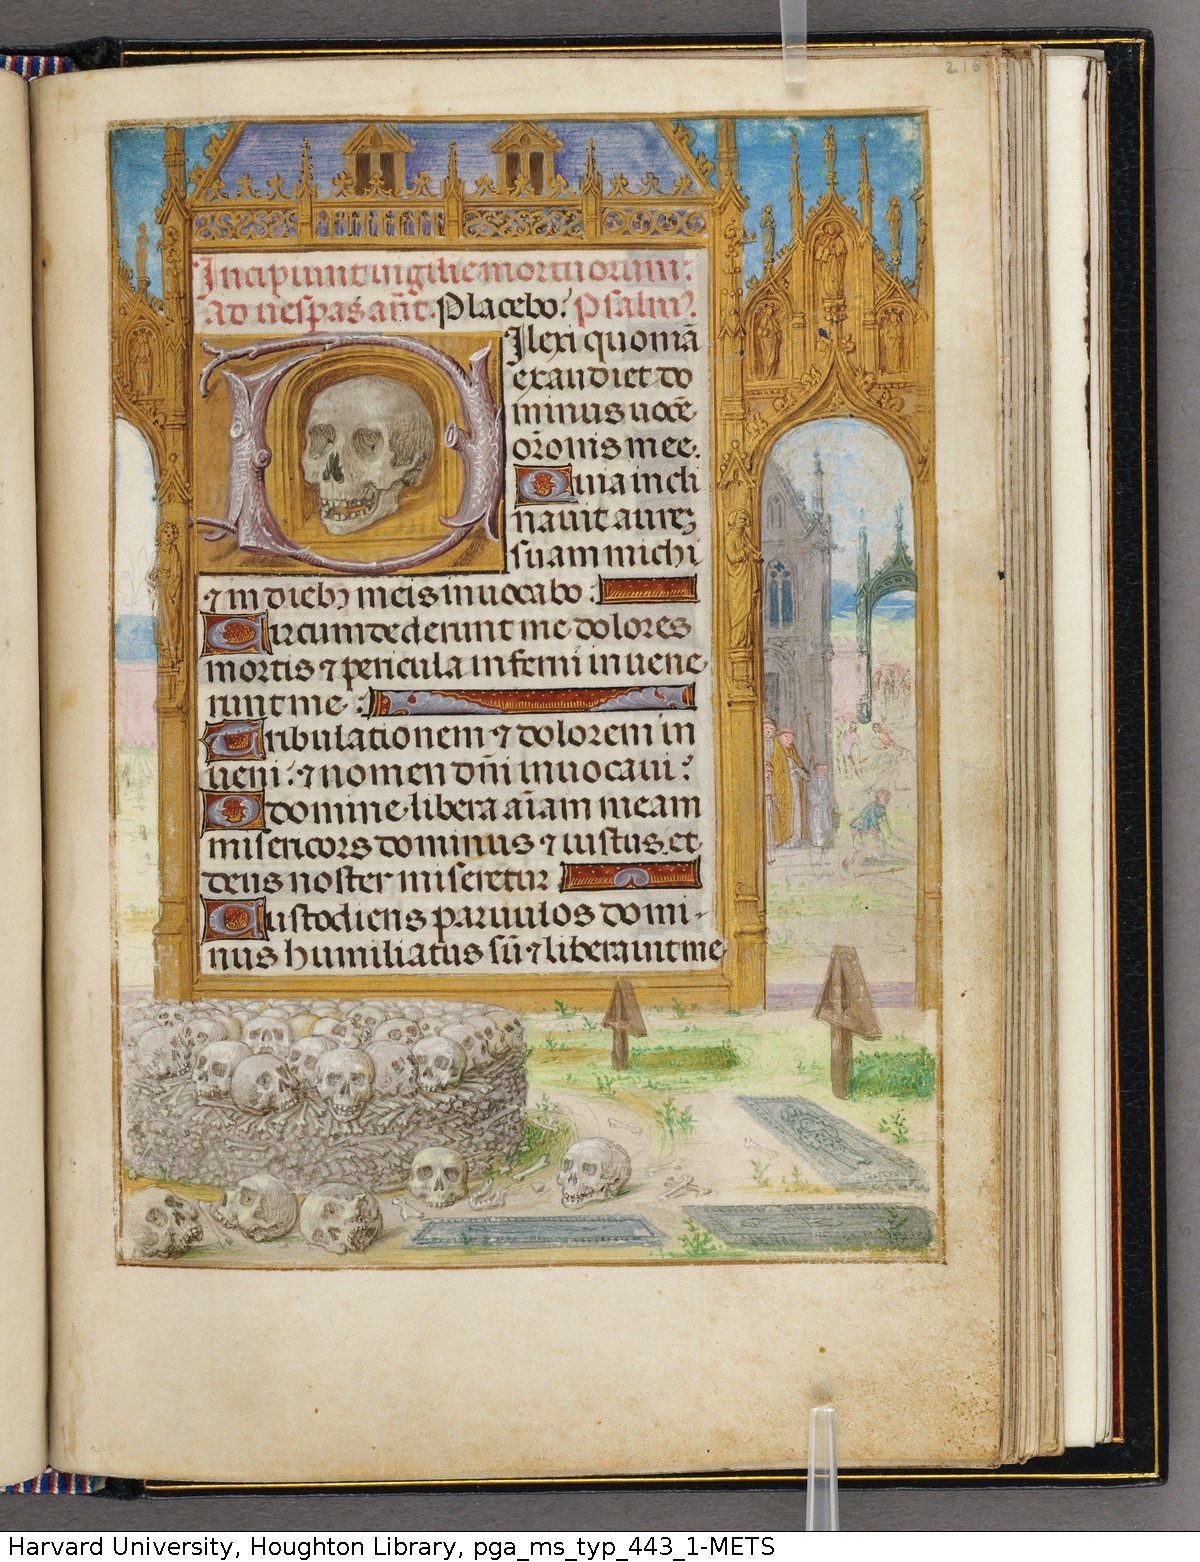 Emerson-White Hours use of Rome 1480 ca Harvard University, Houghton Library, MSS Typ 443.1 fol 216